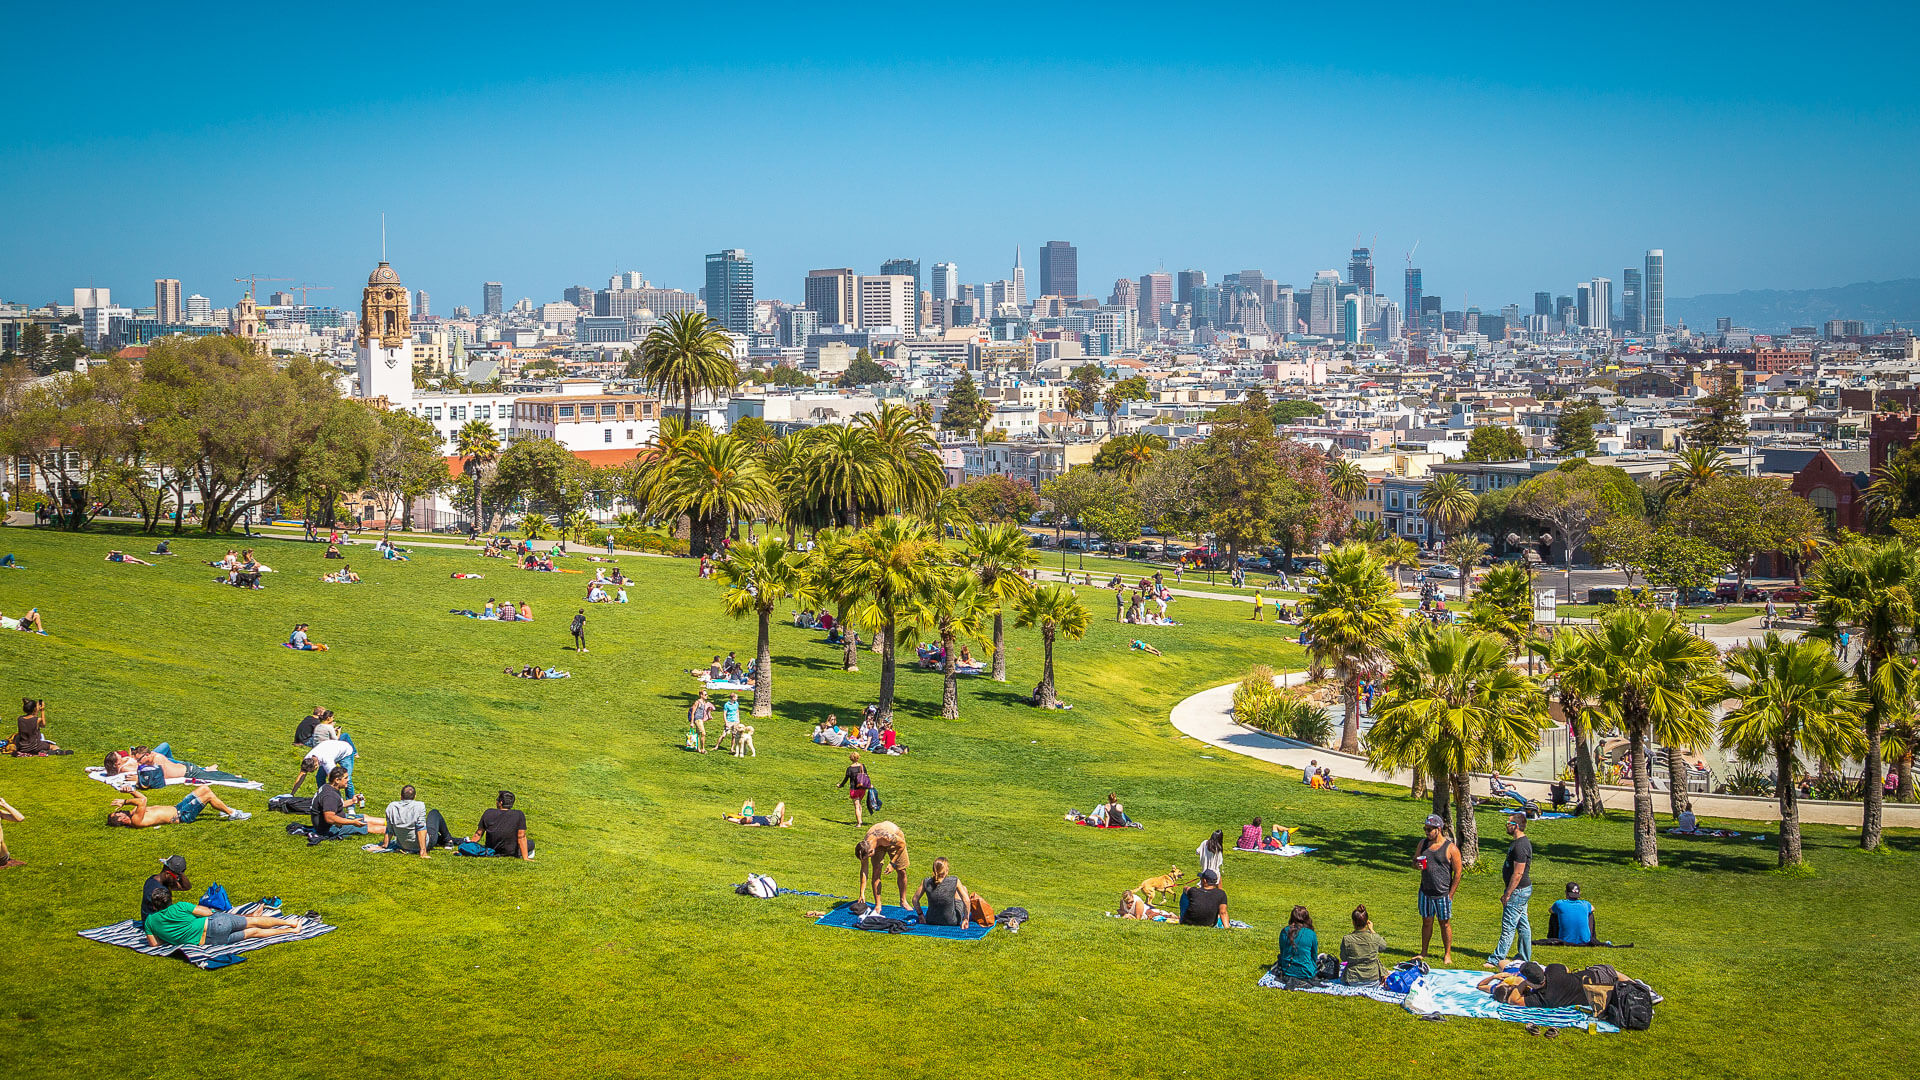 people hangout in Mission Dolores Park in San Francisco